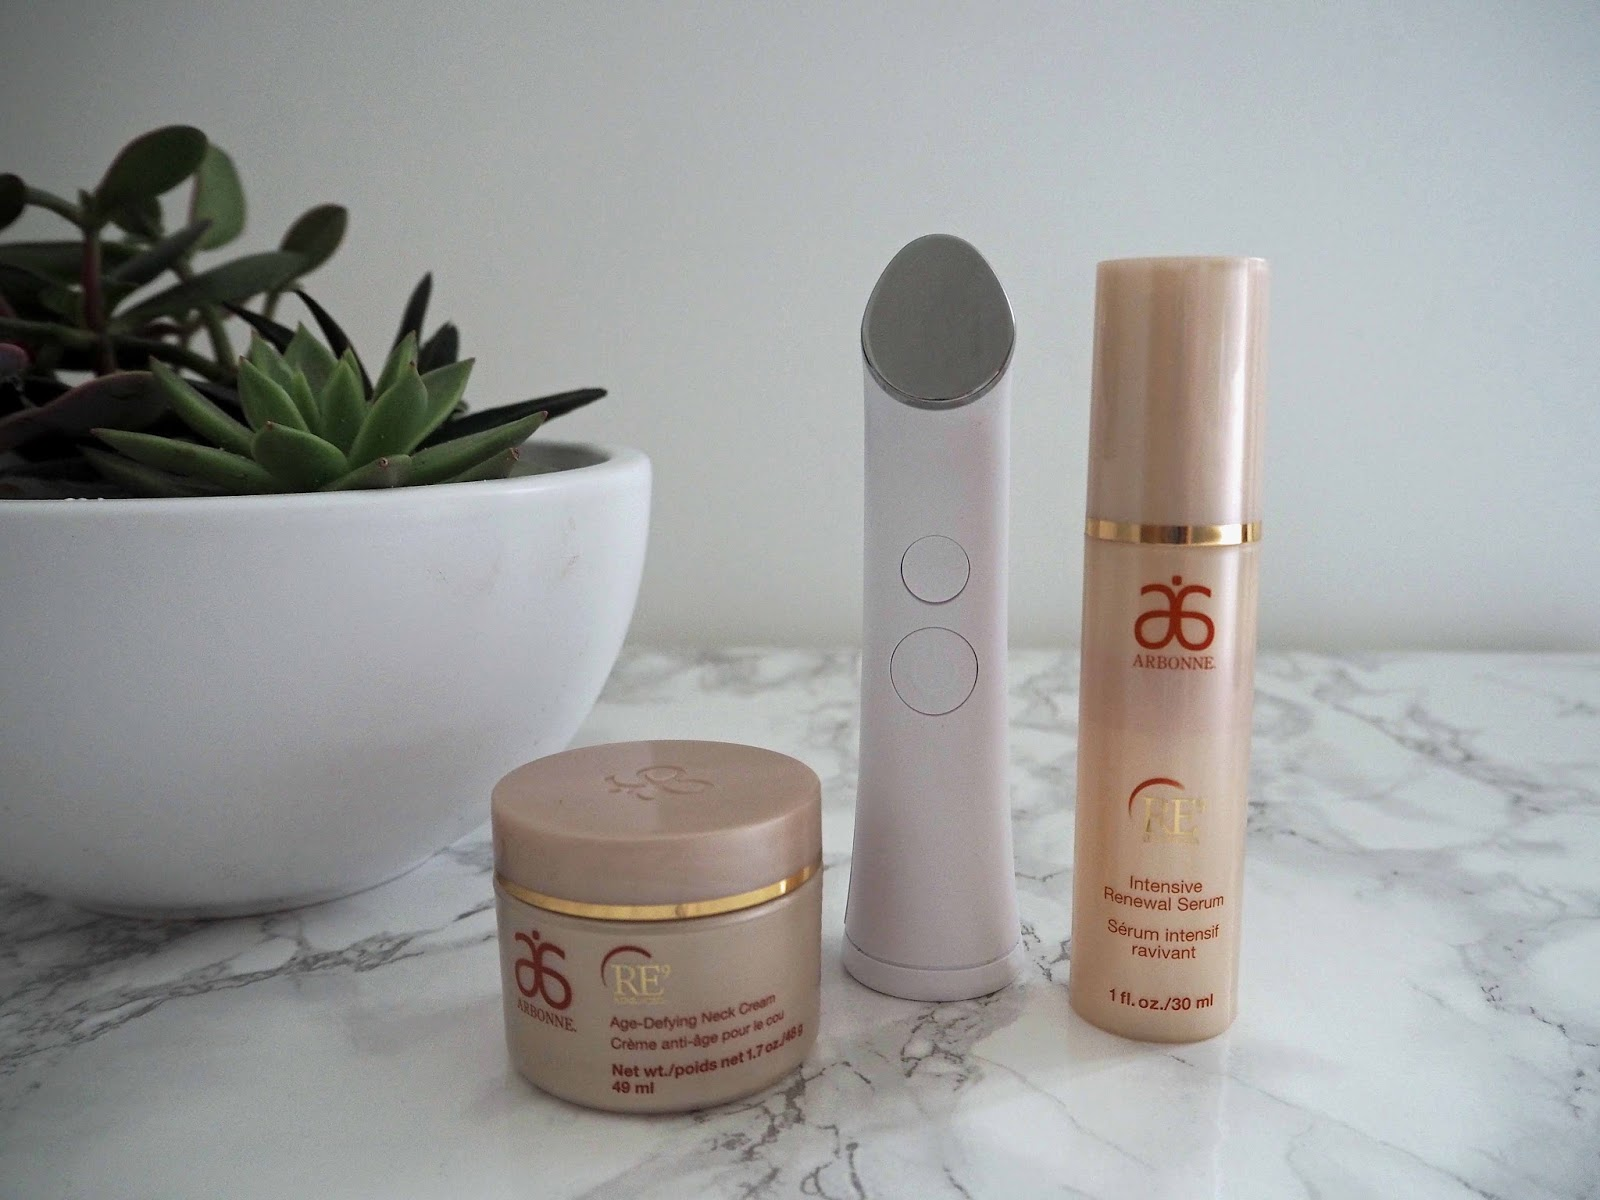 A Review of The Arbonne anti-ageing Genius device.